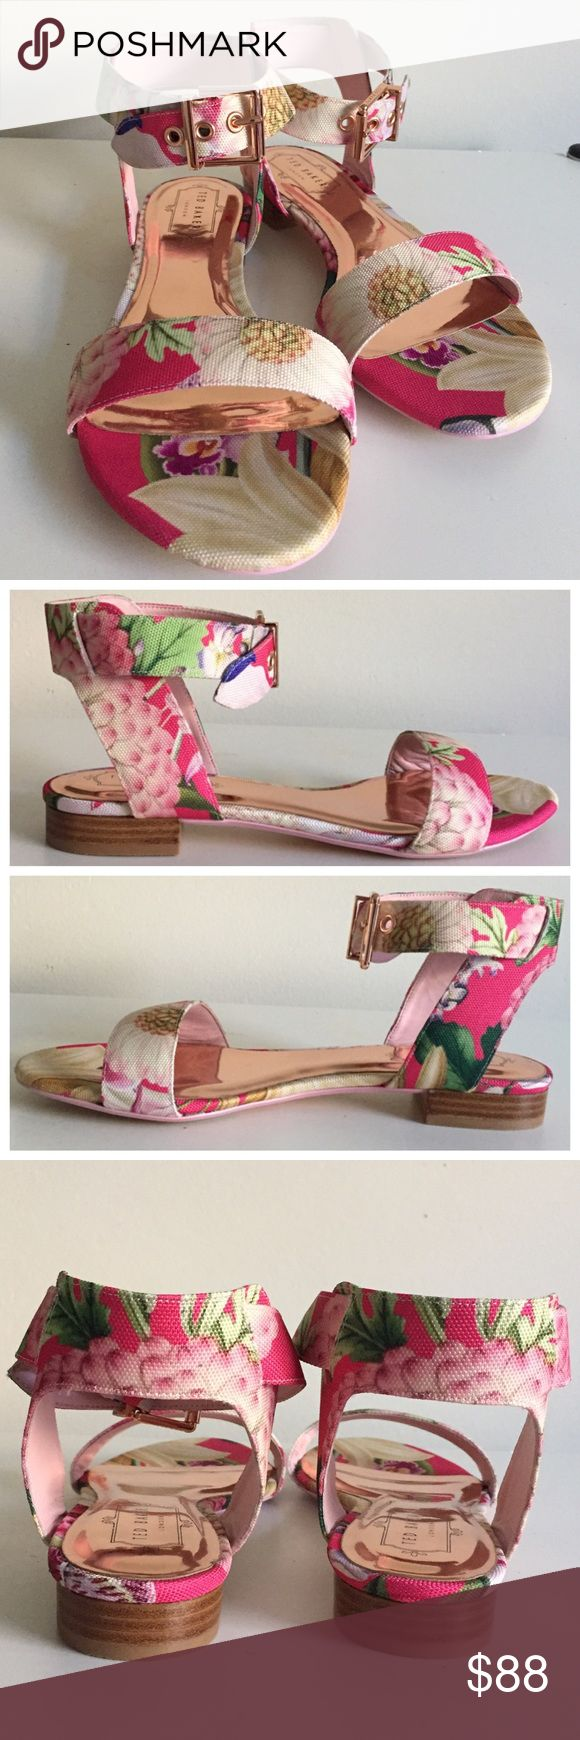 "SALENIB Auth Ted Baker Leeban Floral Sandals NIB authentic Ted Baker London Leeban flat sandals / ""Encyclopaedia Floral"" print / adjustable ankle straps with buckle closure / textile upper / textile lining / rose gold leather insole / textile and resin sole / rose gold toned hardware and accents / 1"" stacked heels / original box / fits true to size / reasonable offers welcome / also listed on ♏️ercri for less Ted Baker Shoes Sandals"